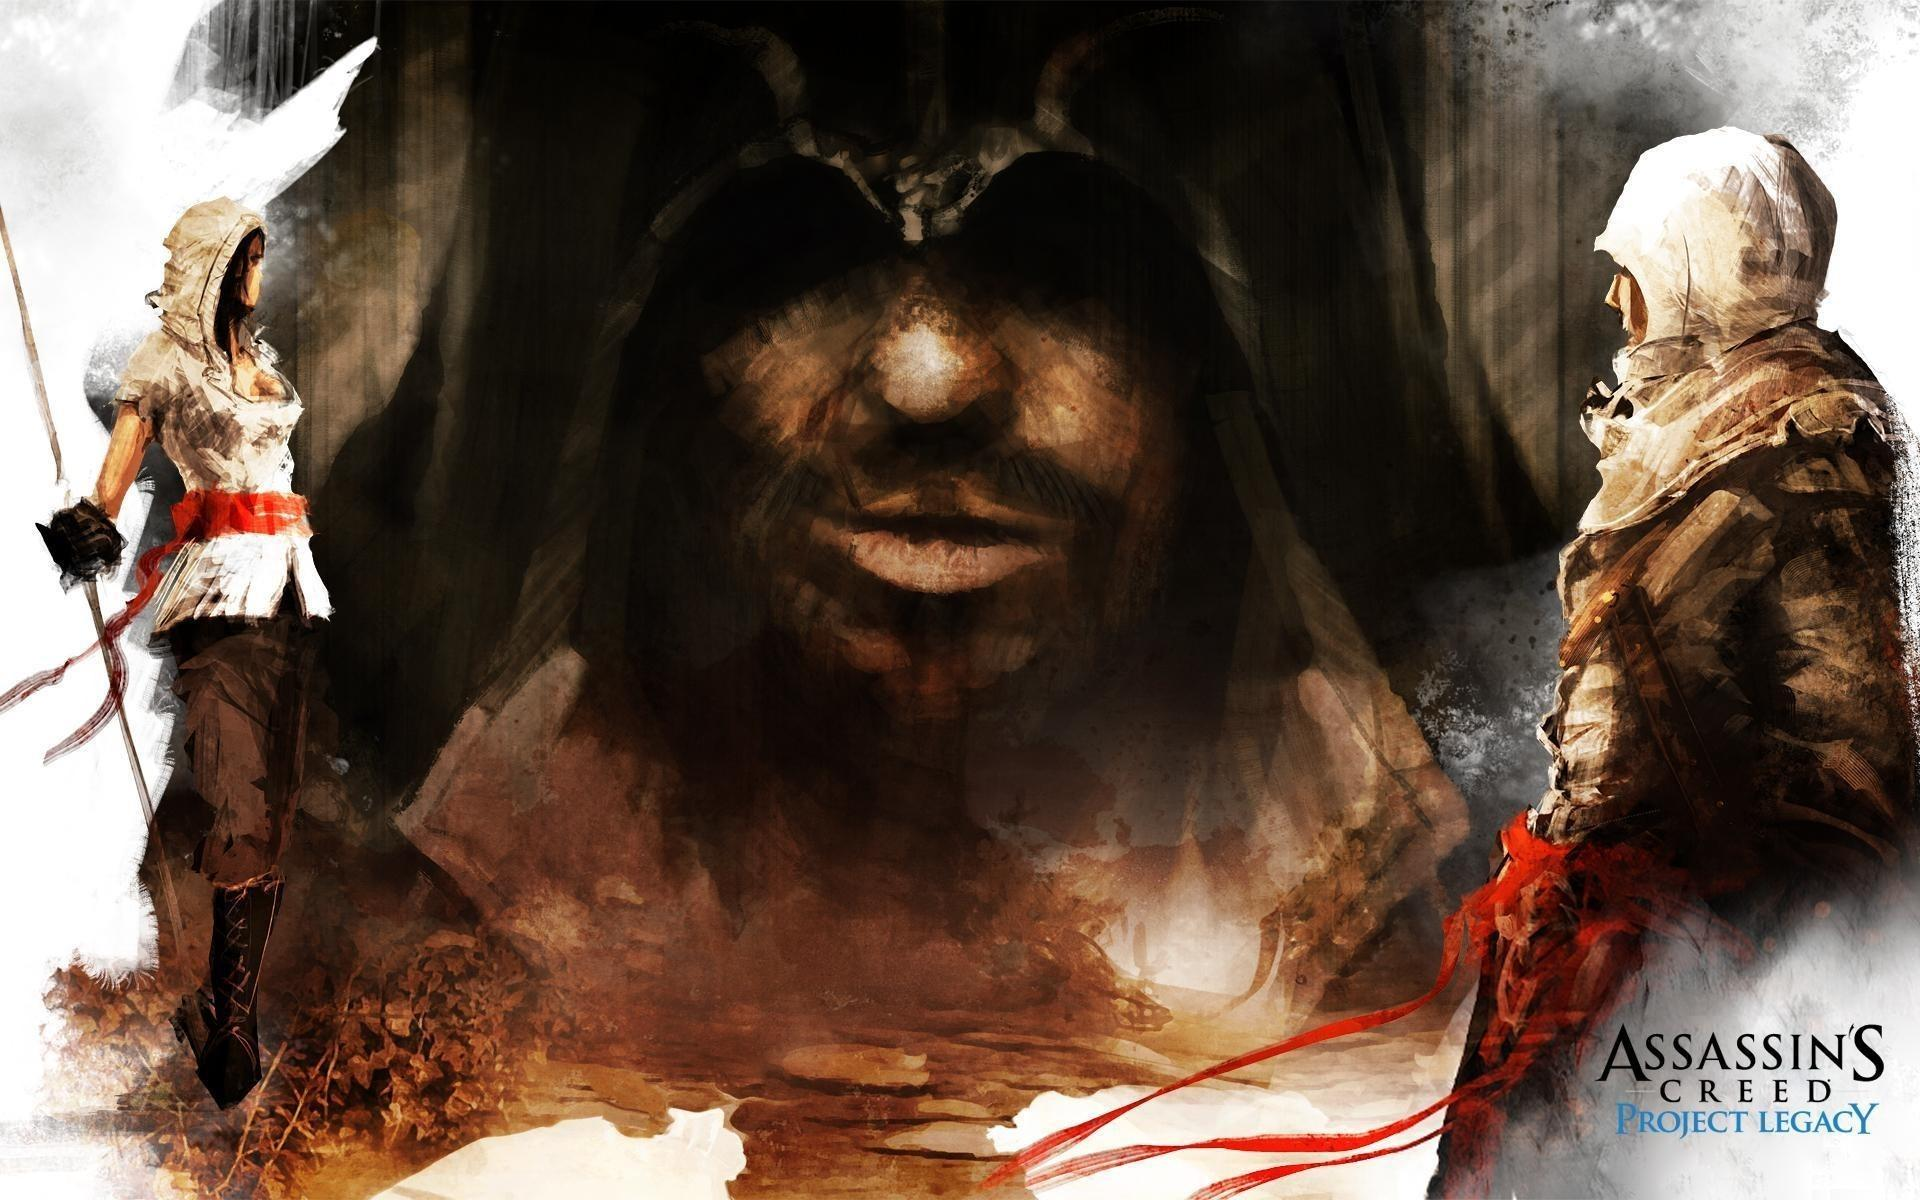 Обои Assassins Creed: Project Legacy 1920x1200